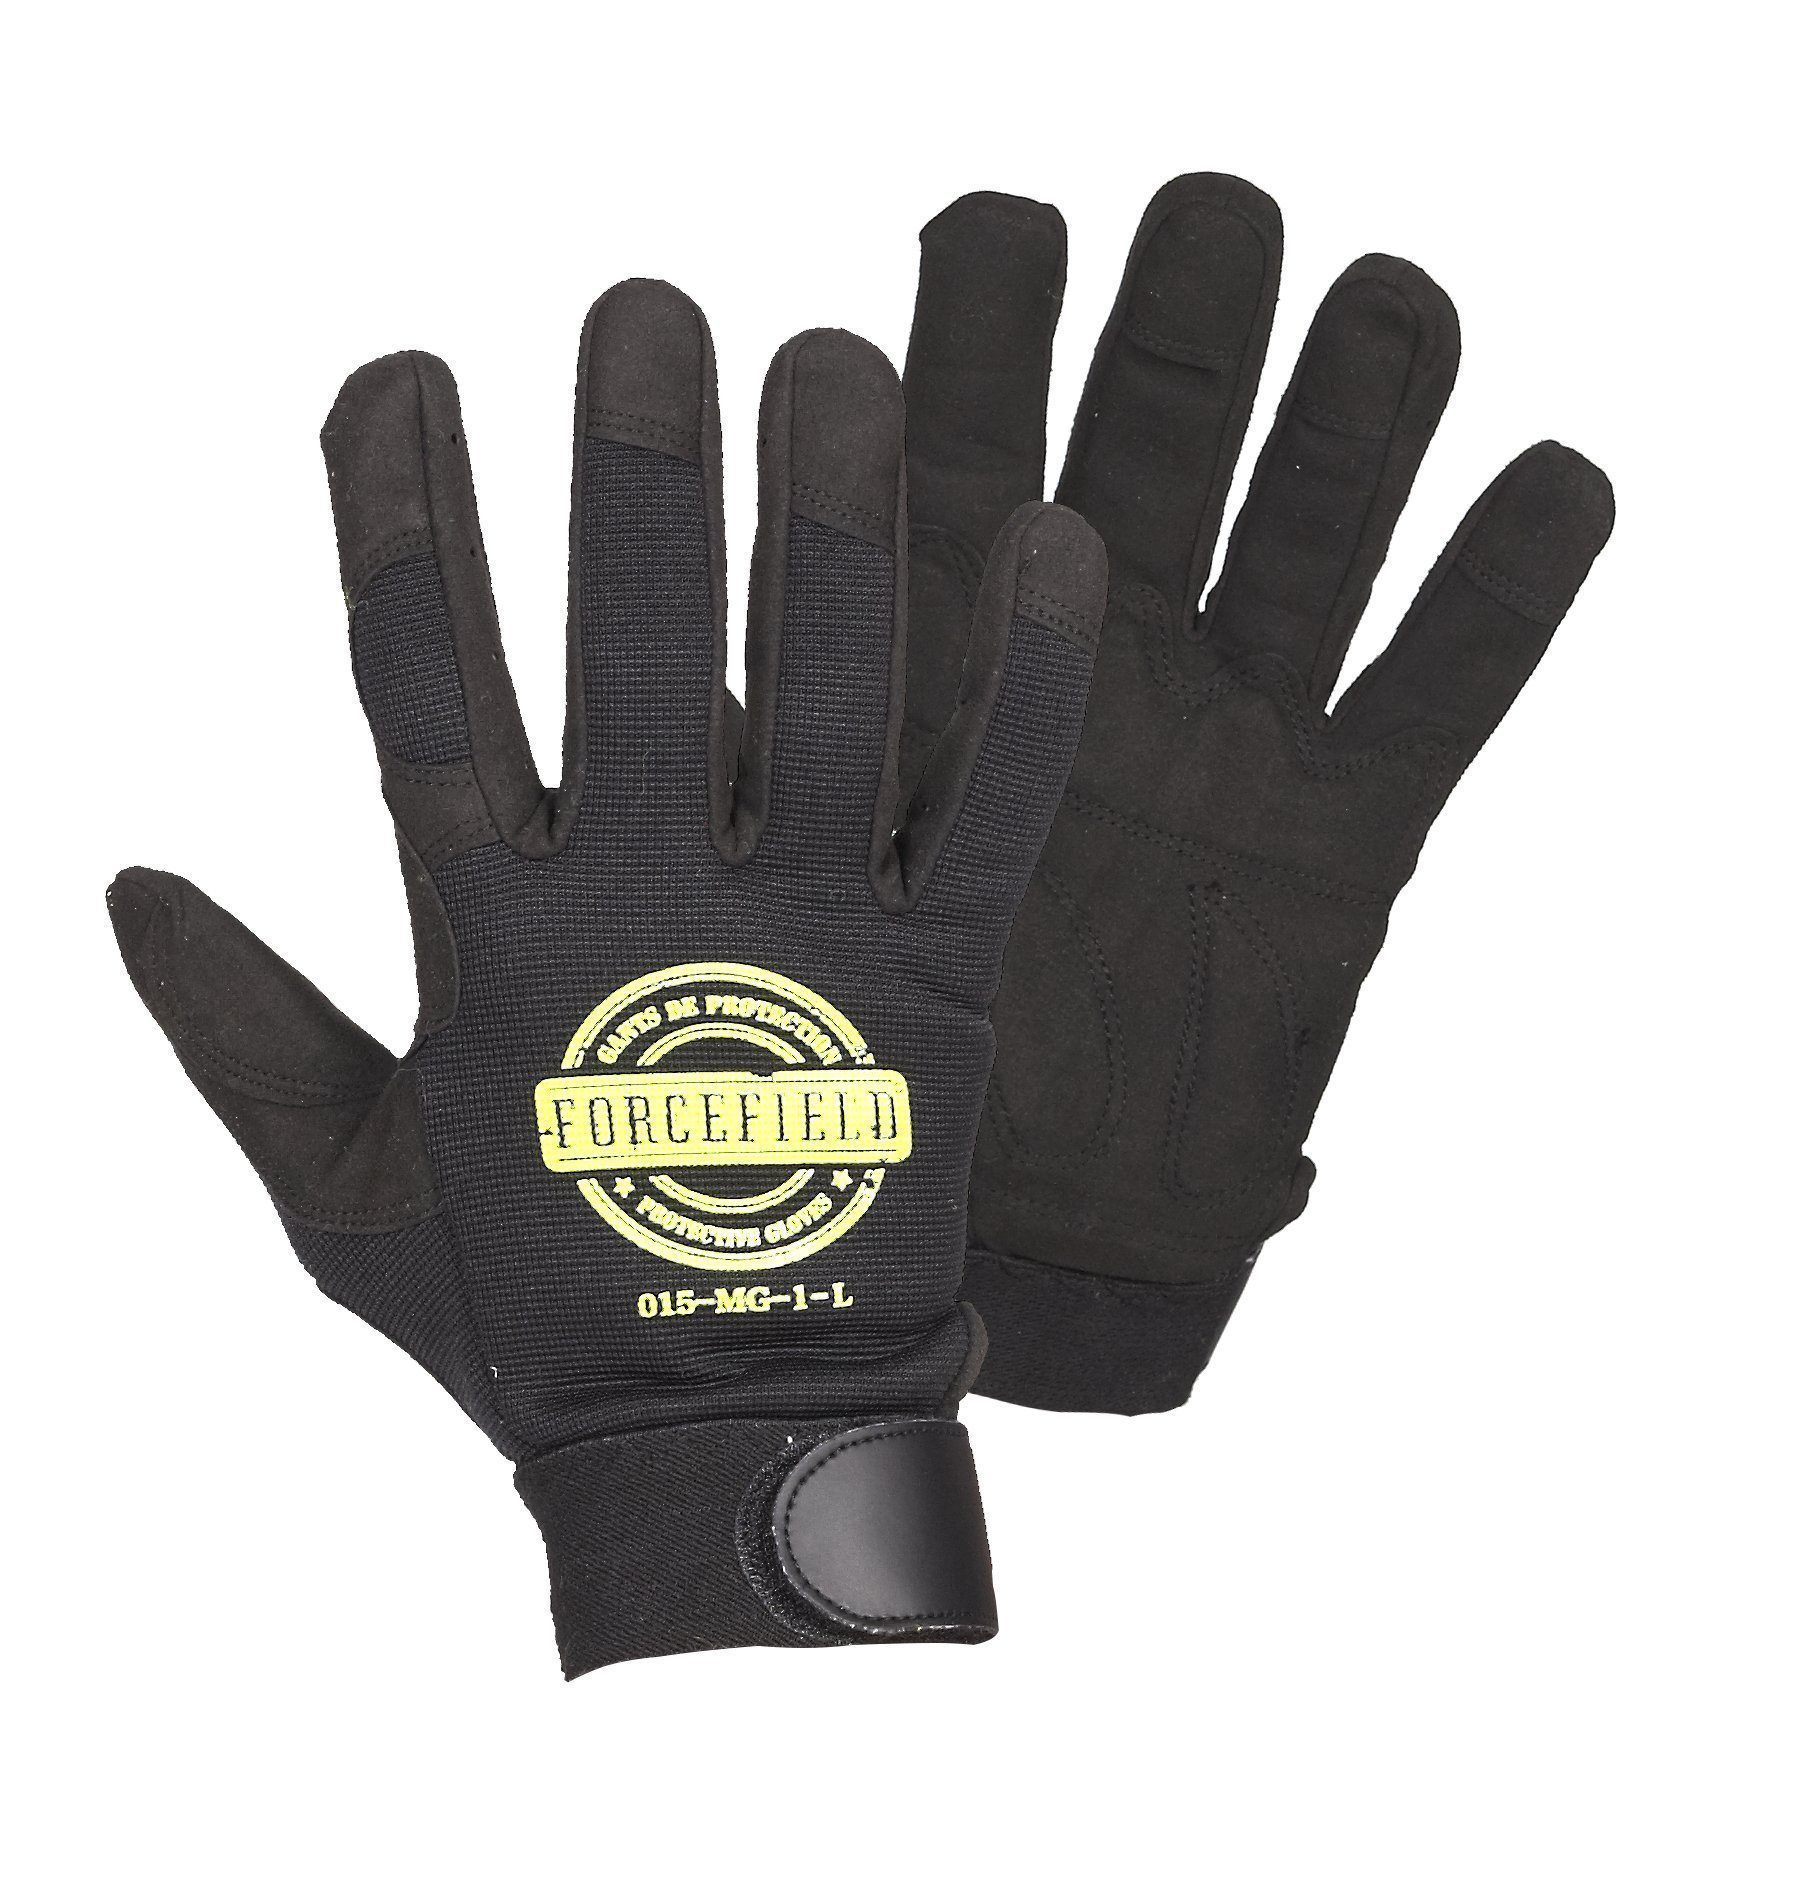 Gloves - Forcefield Mechanic's Glove w/Padded Palm - Blk - L